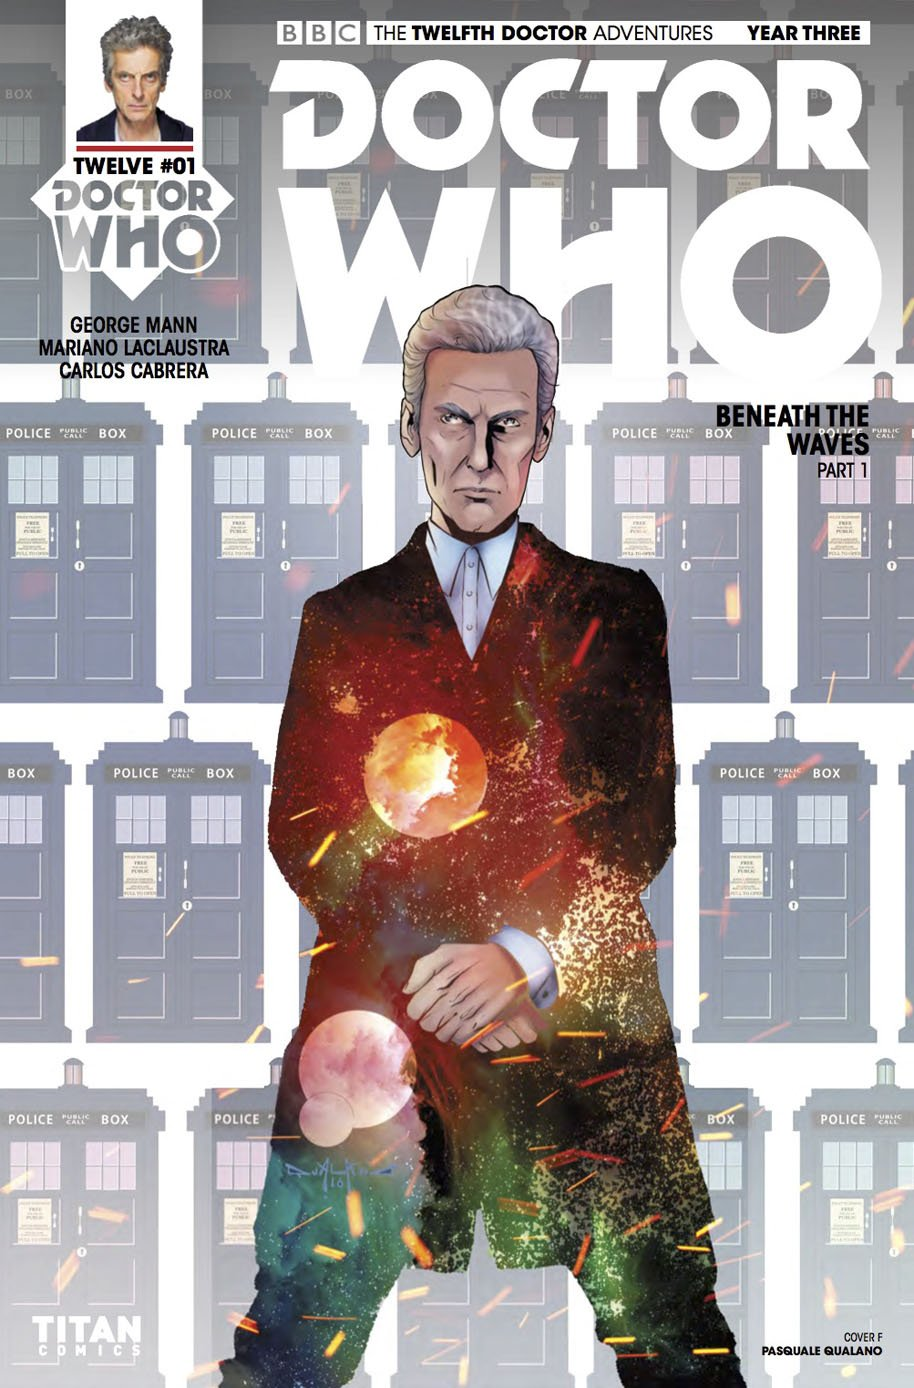 Doctor Who Twelfth Doctor Year Three 1 Cover F